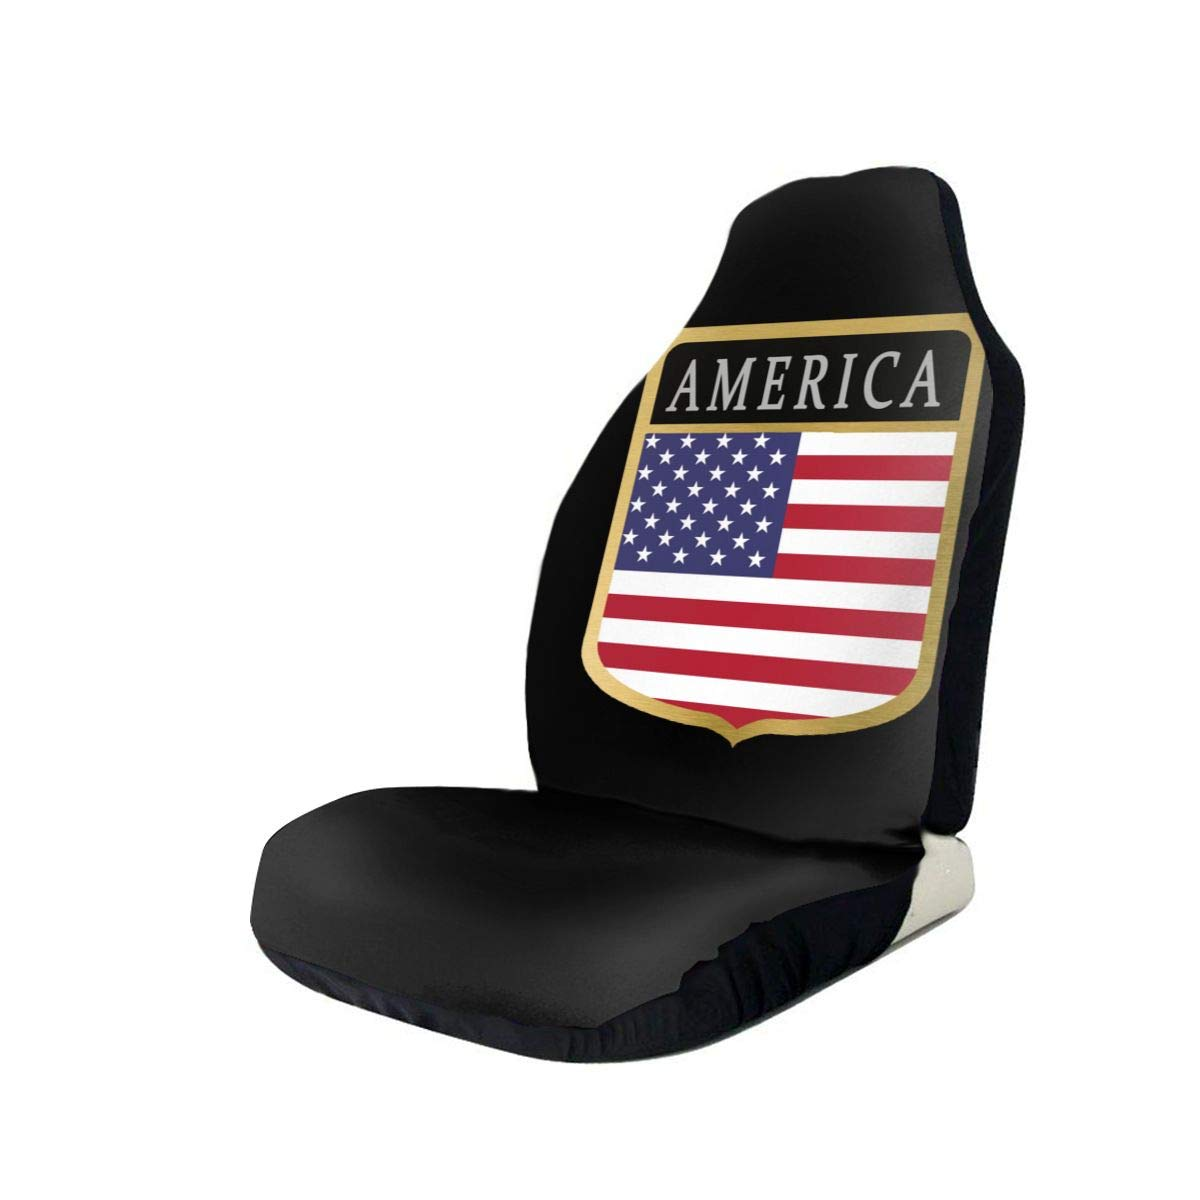 America Flag Genuine Free Shipping Shield Car Seat Covers for Universal Pr Vehicles Raleigh Mall 3D